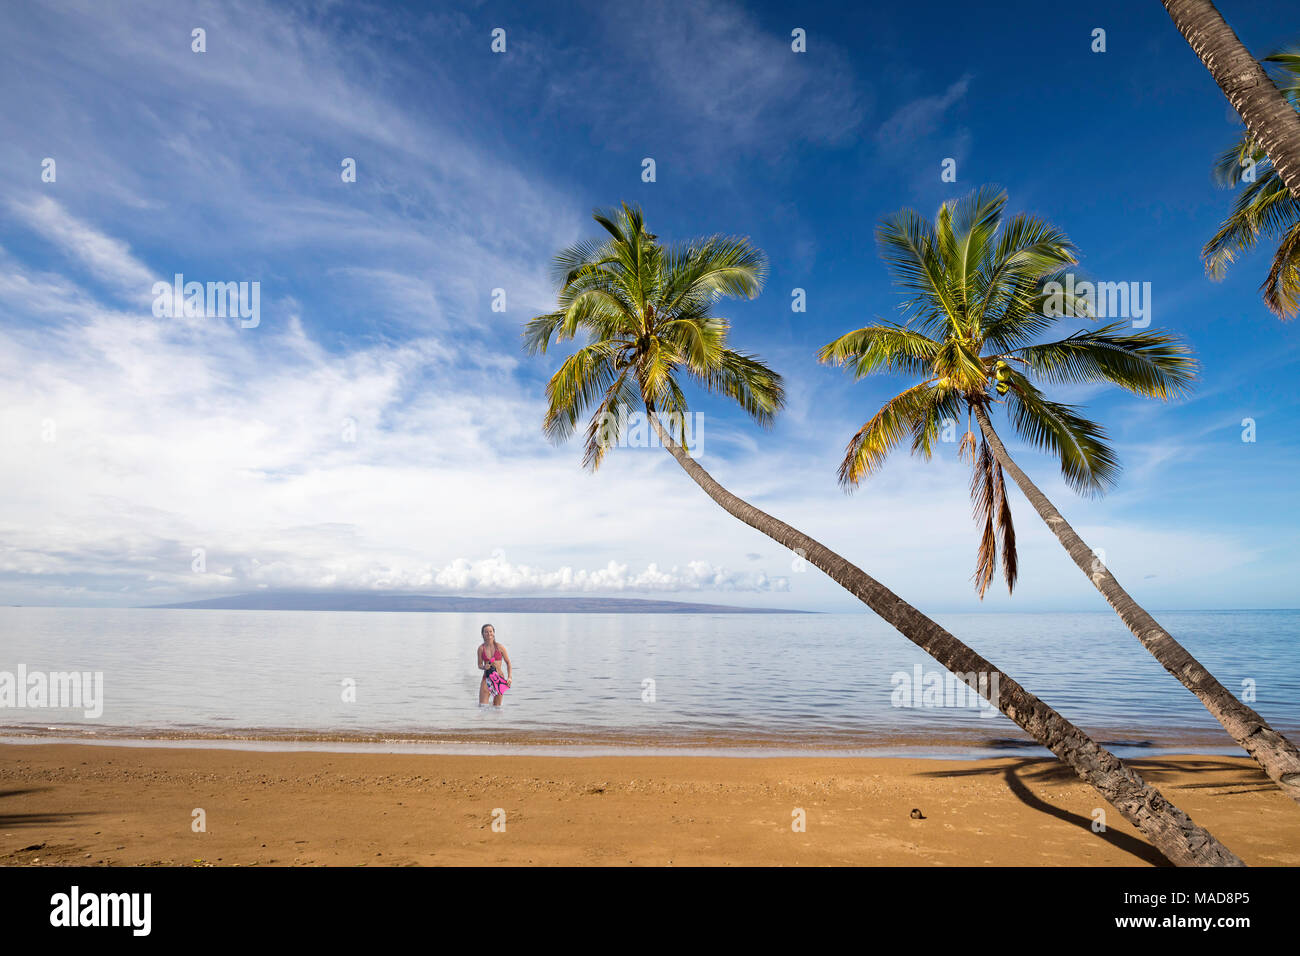 A girl (MR) comes out of the ocean with mask and snorkel onto a sandy, calm beach and palm trees at Kakahaia Beach Park, island of Molokai, Hawaii, Un - Stock Image